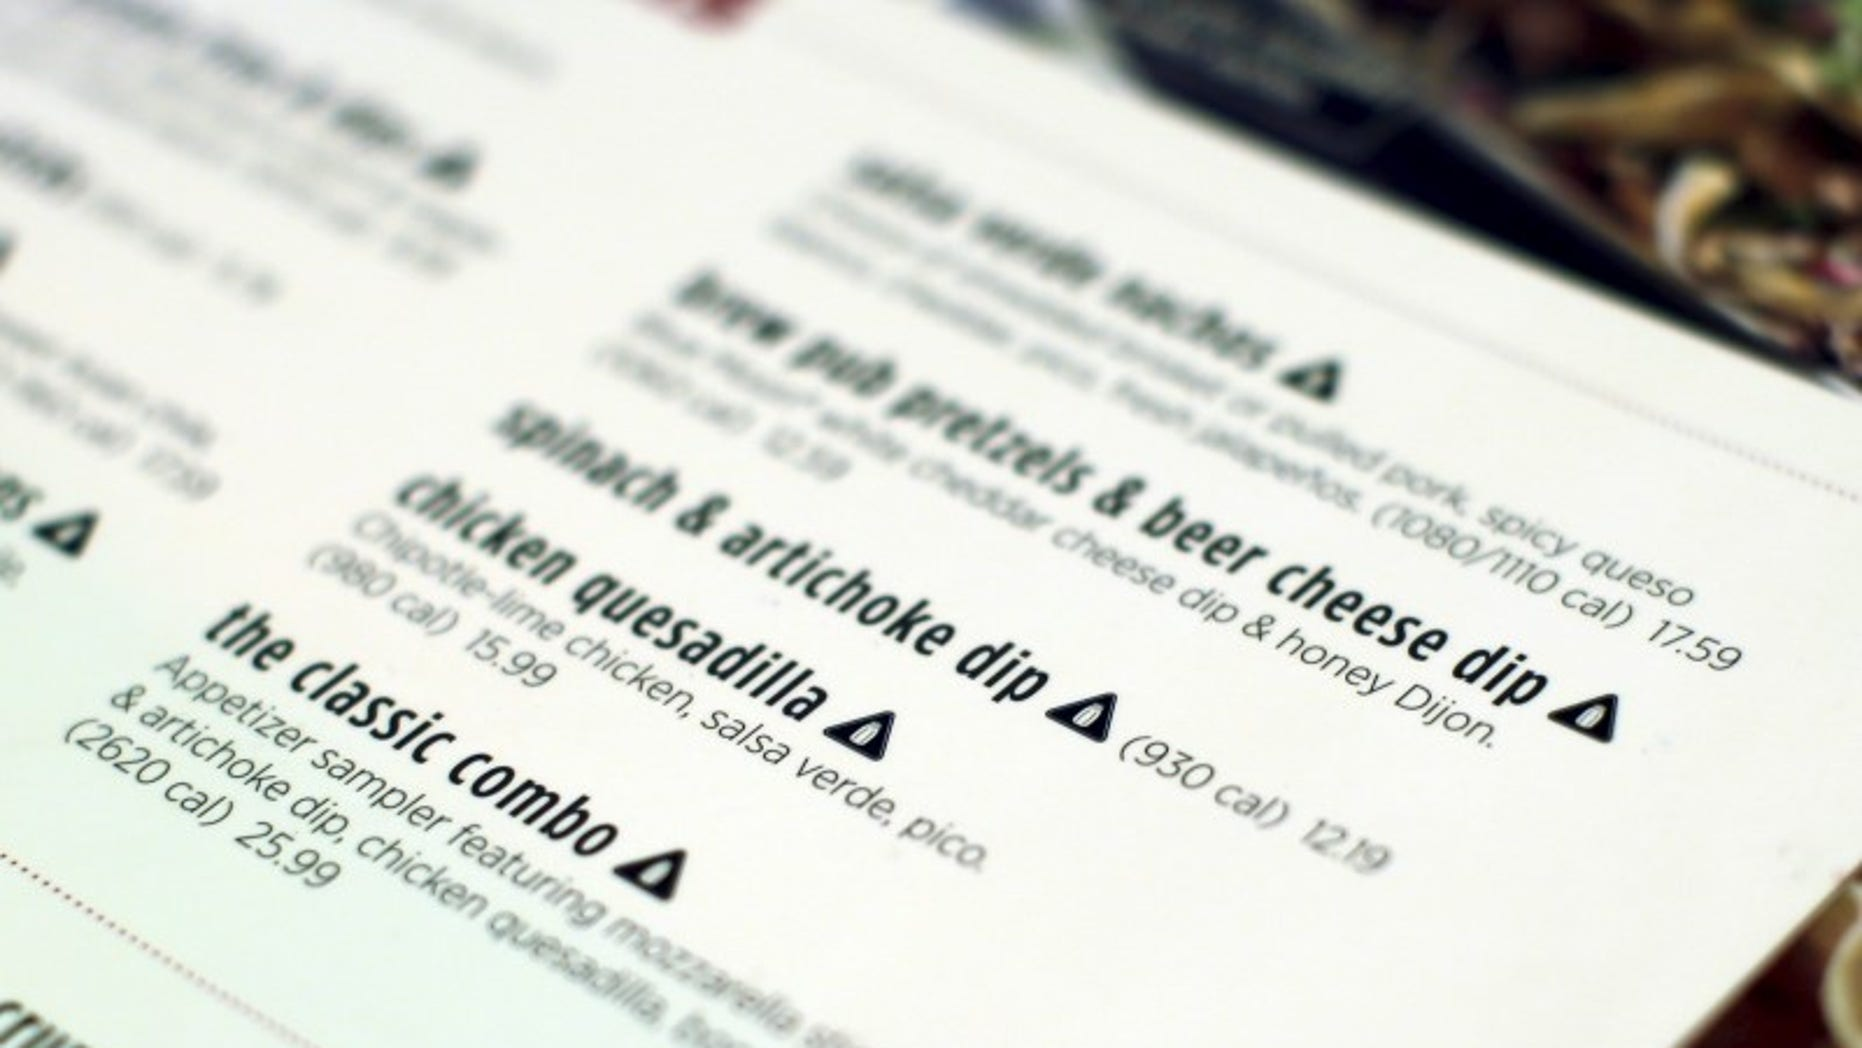 A new menu from Applebee's restaurant is seen at one of its outlet in the Manhattan borough of New York City